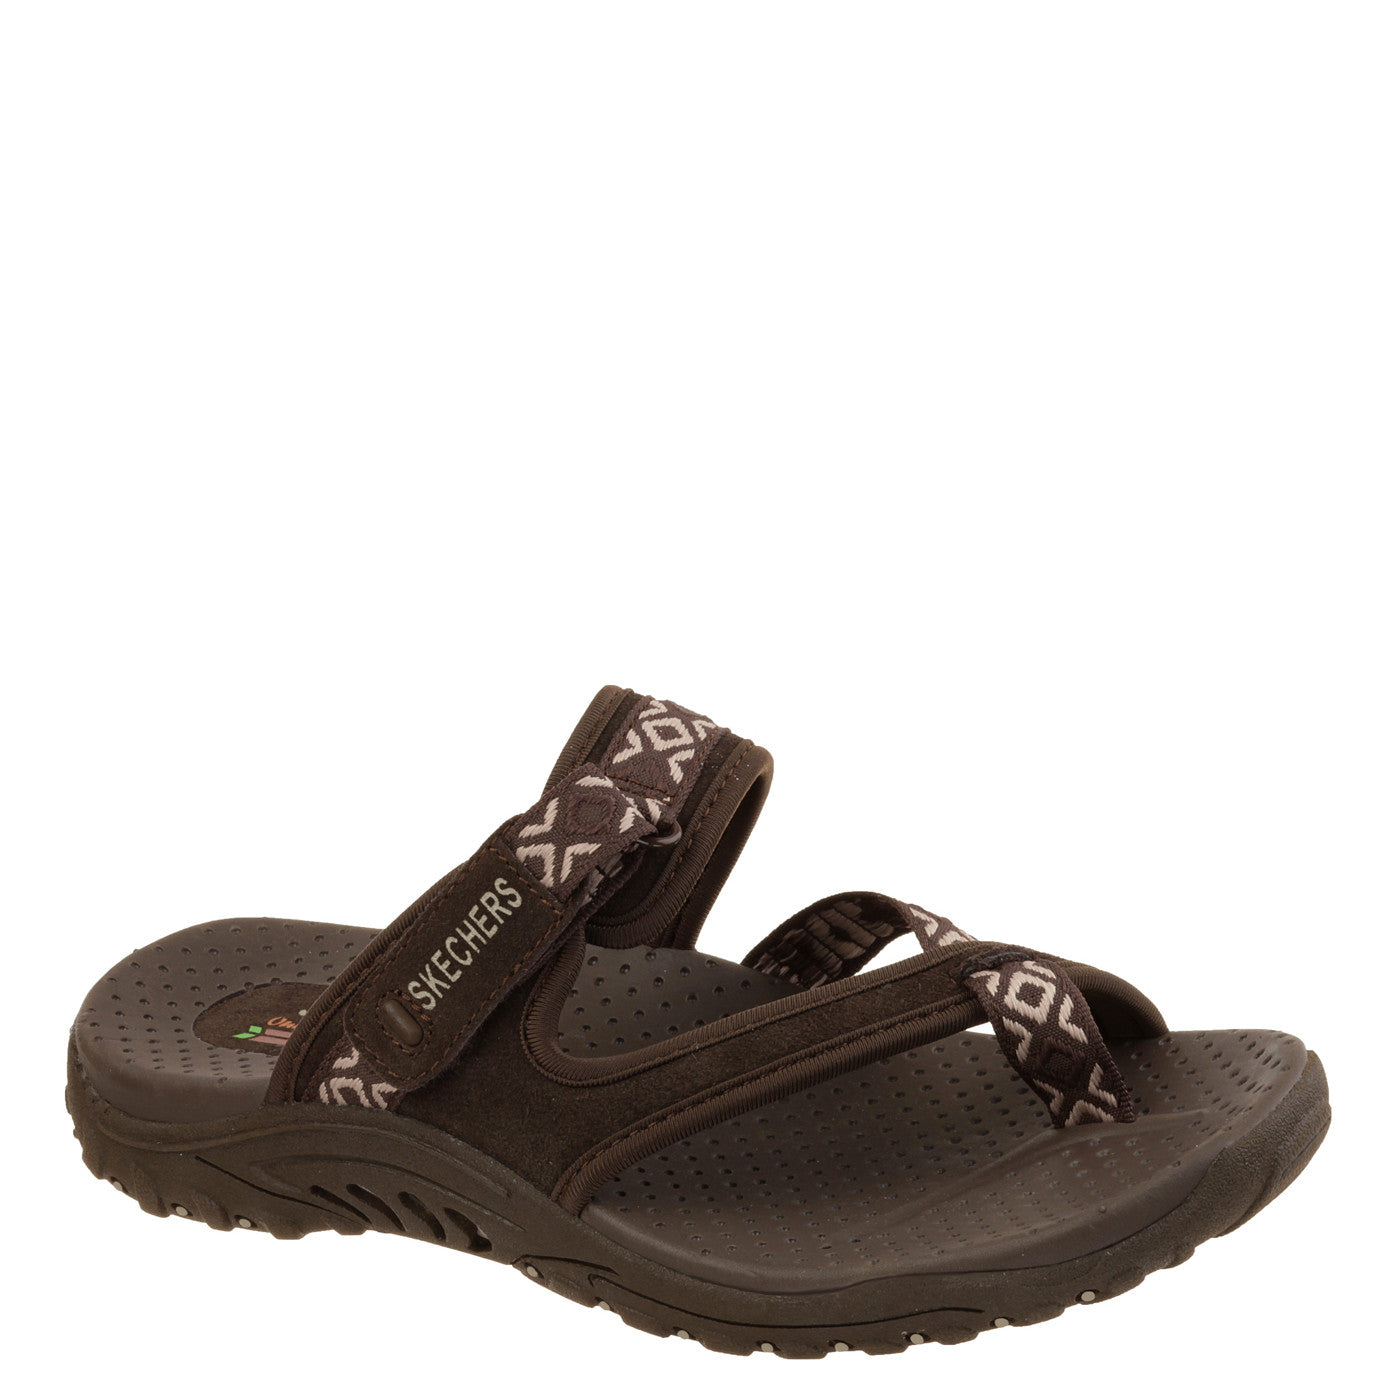 Skechers Shoes  Skechers Trailway 40798 Womens Sandals Chocolate